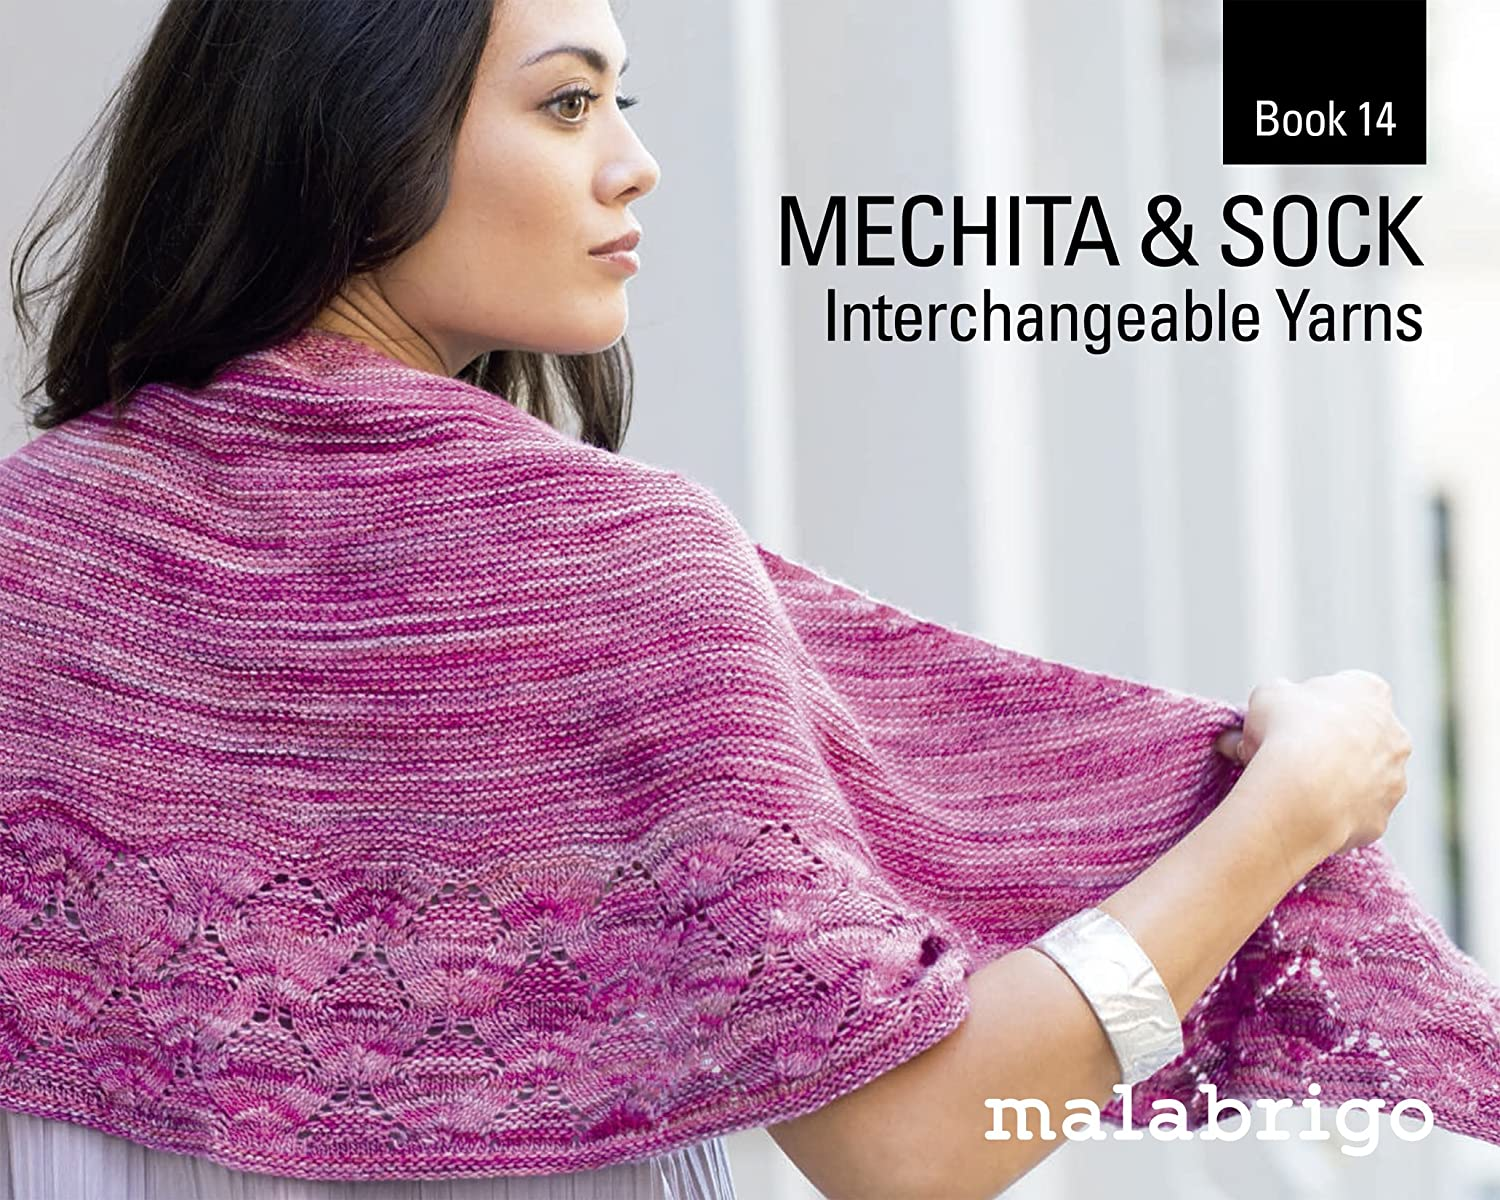 Malabrigo Knitting Pattern Book 10 Rios